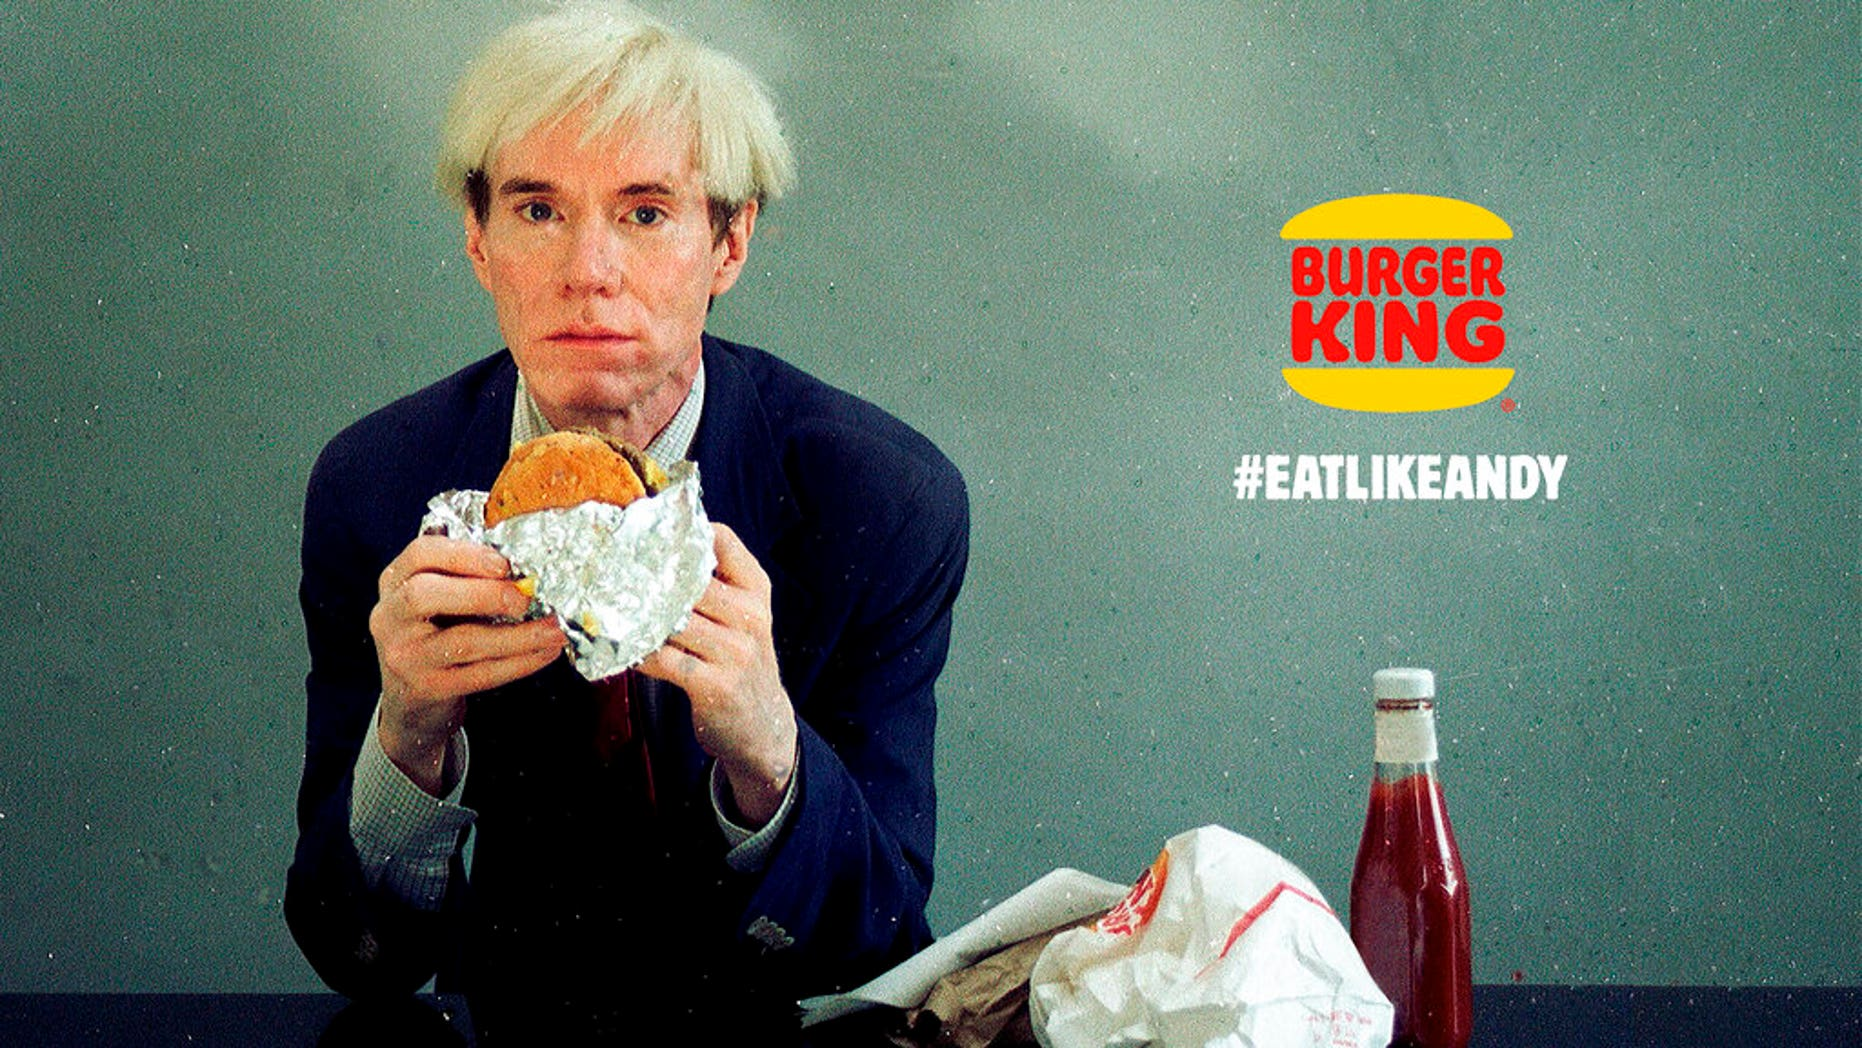 Burger King Digs Up Ancient Andy Warhol Clip For Super Bowl Ad